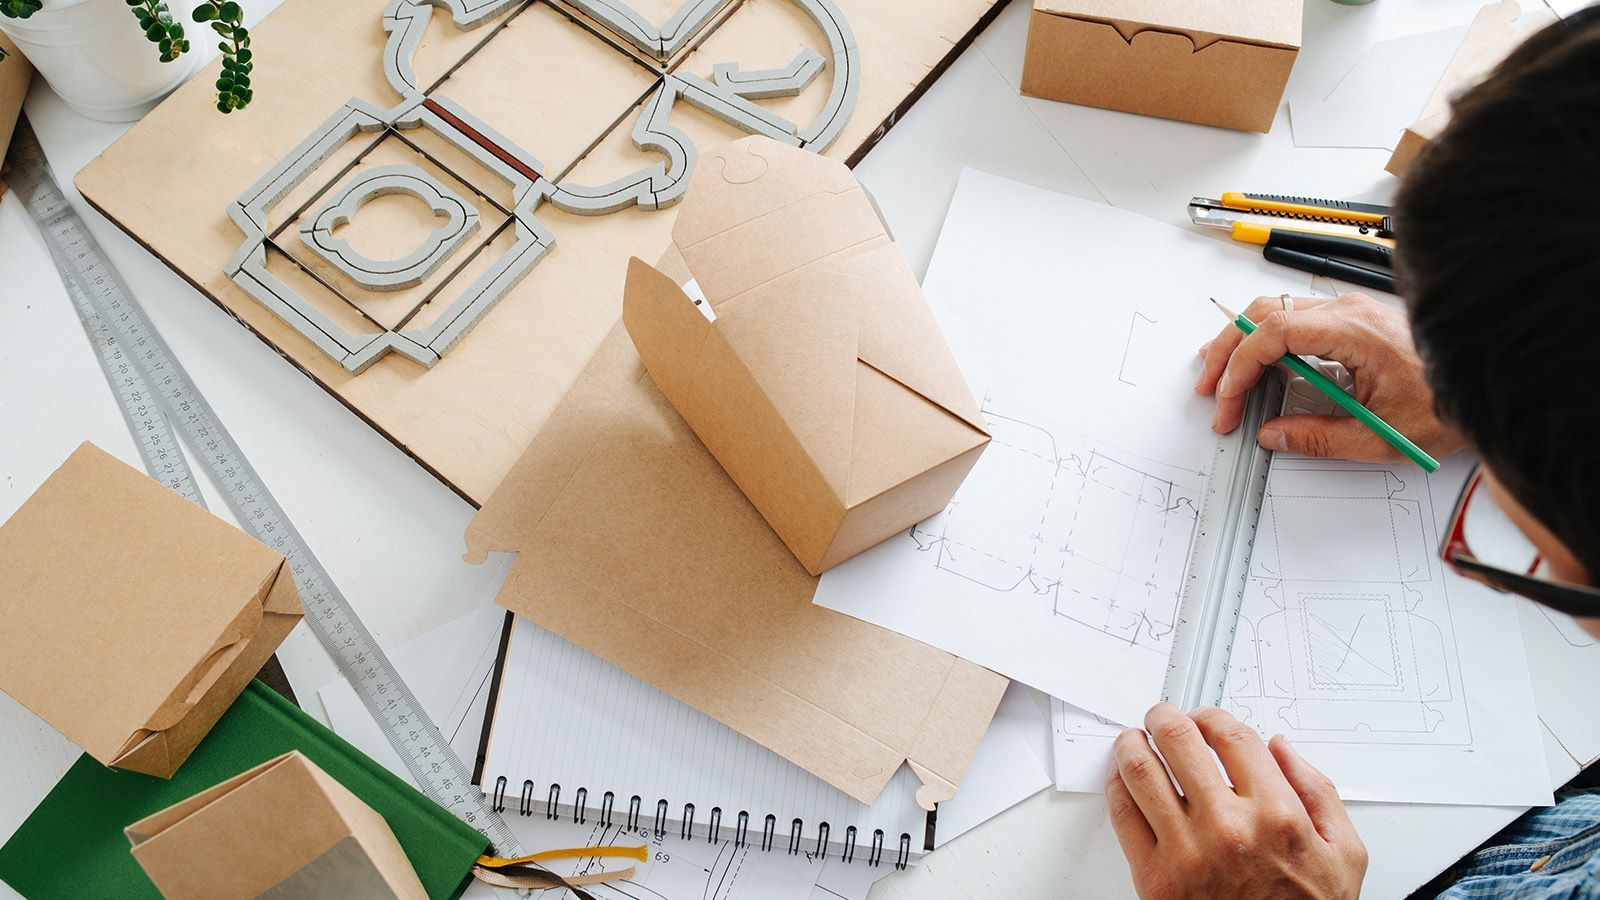 7 Do's and Don'ts of Custom Packaging